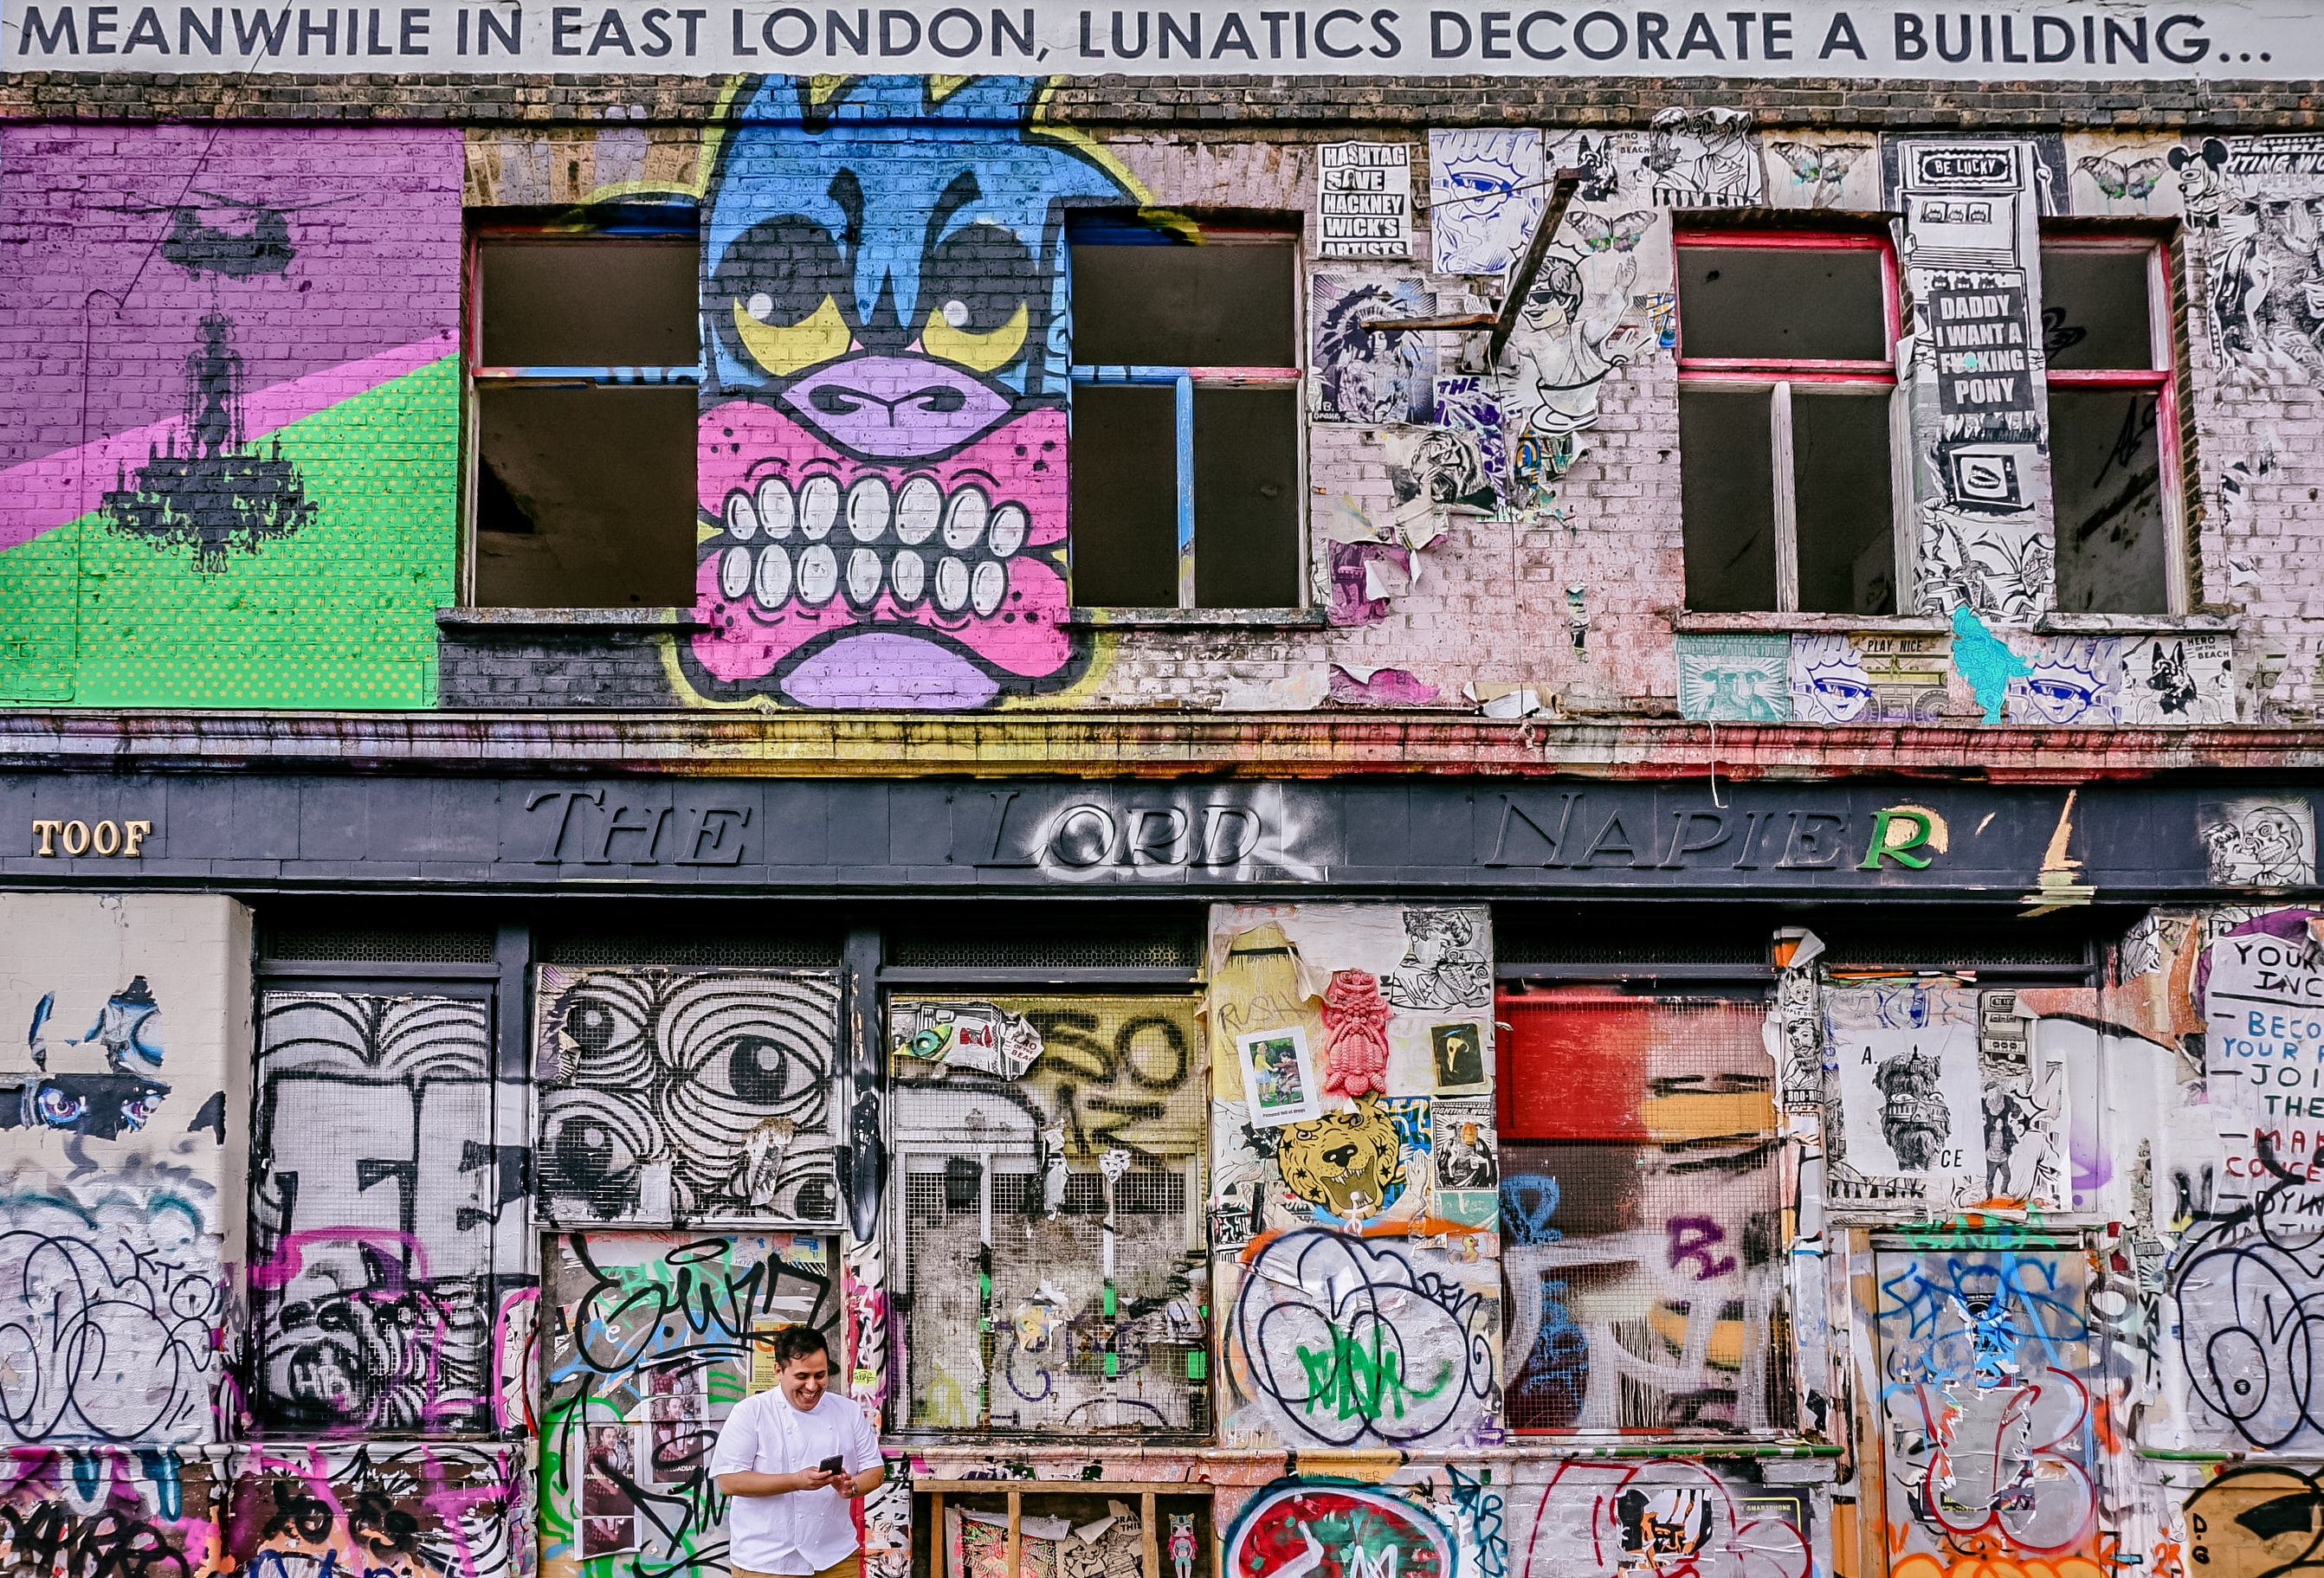 A dilapidated building facade covered in graffiti in Hackney Wick, London